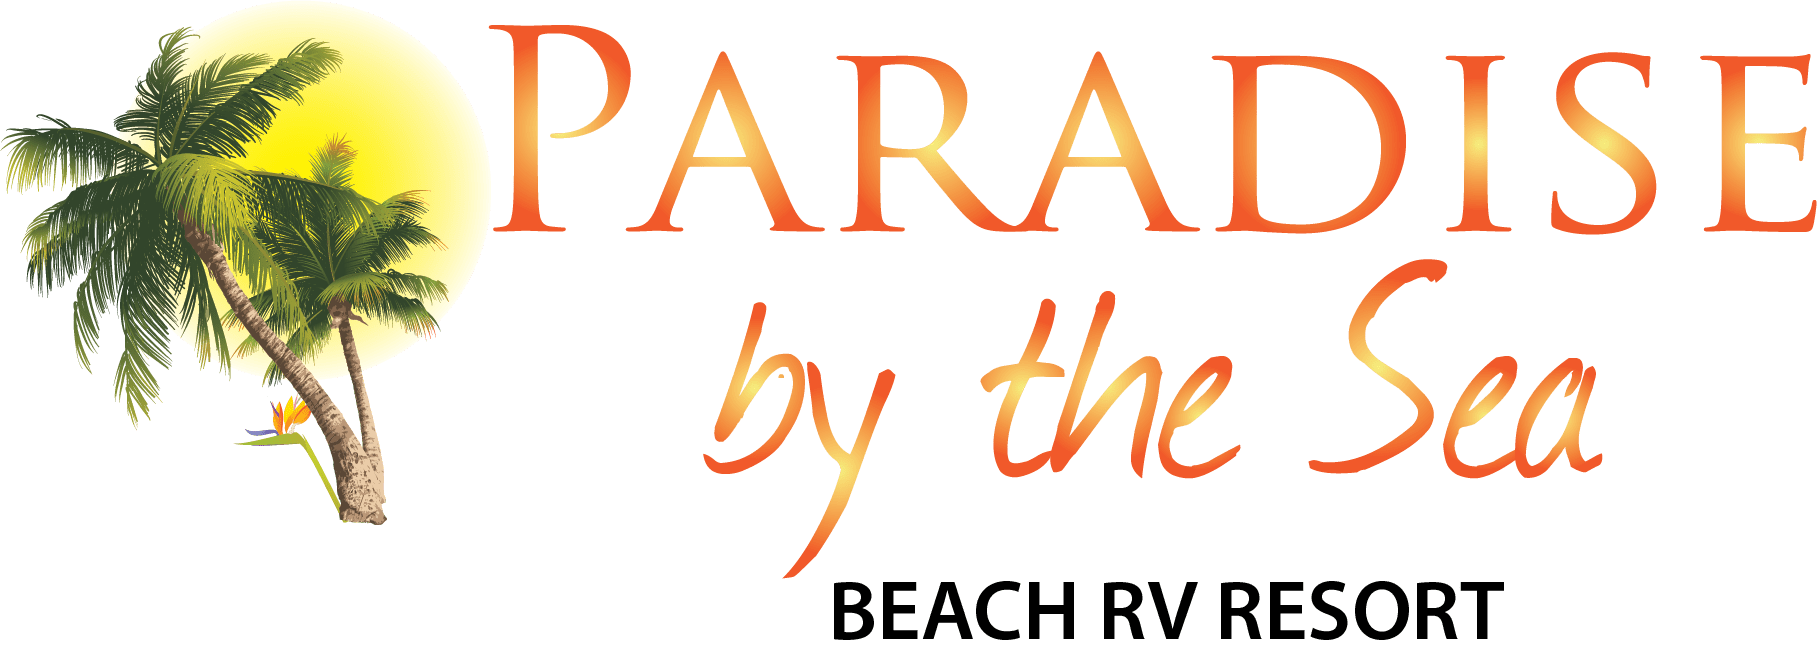 Paradise by the Sea logo